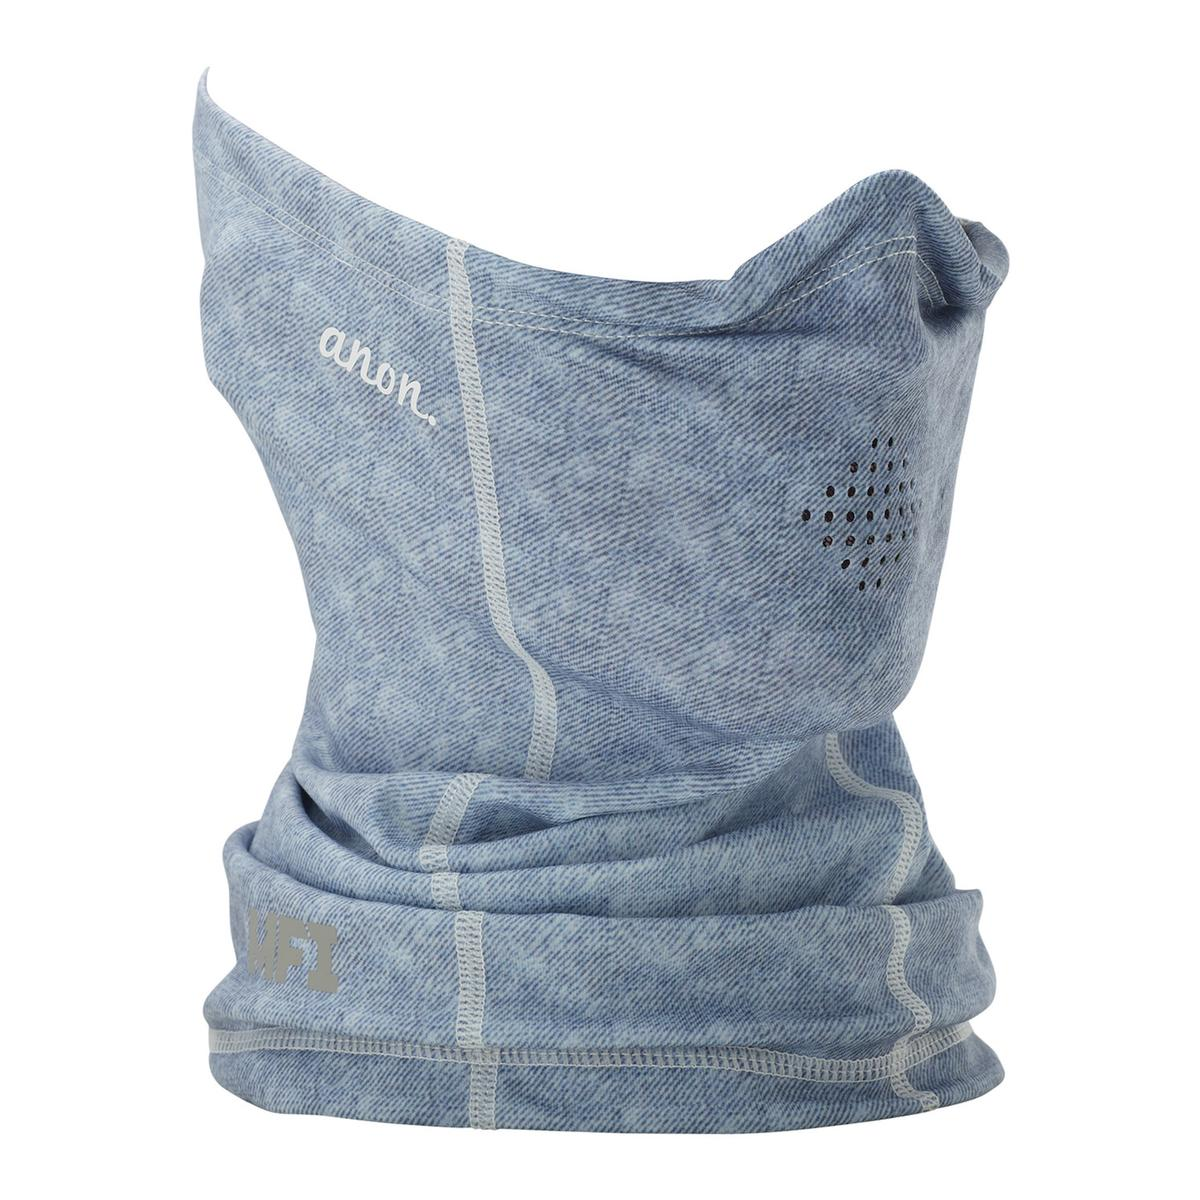 Anon MFI MD Women's Neckwarmer